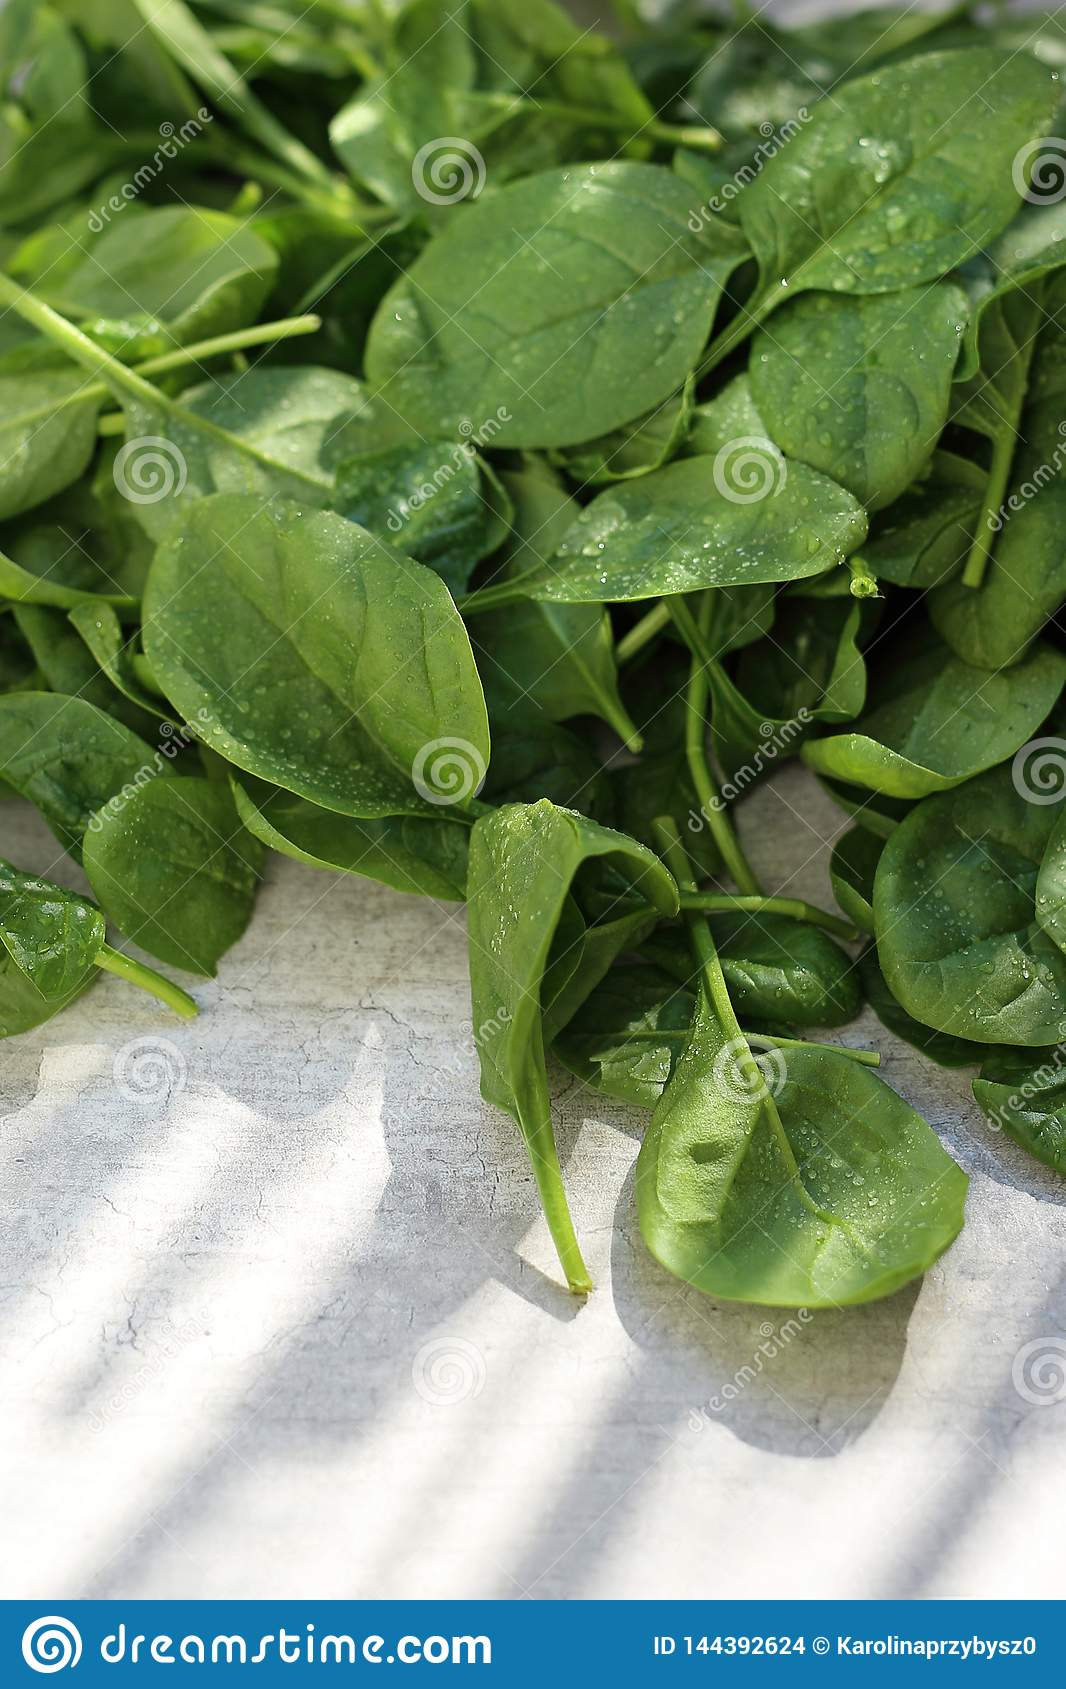 Spinach, fresh green leaves on the kitchen counter.